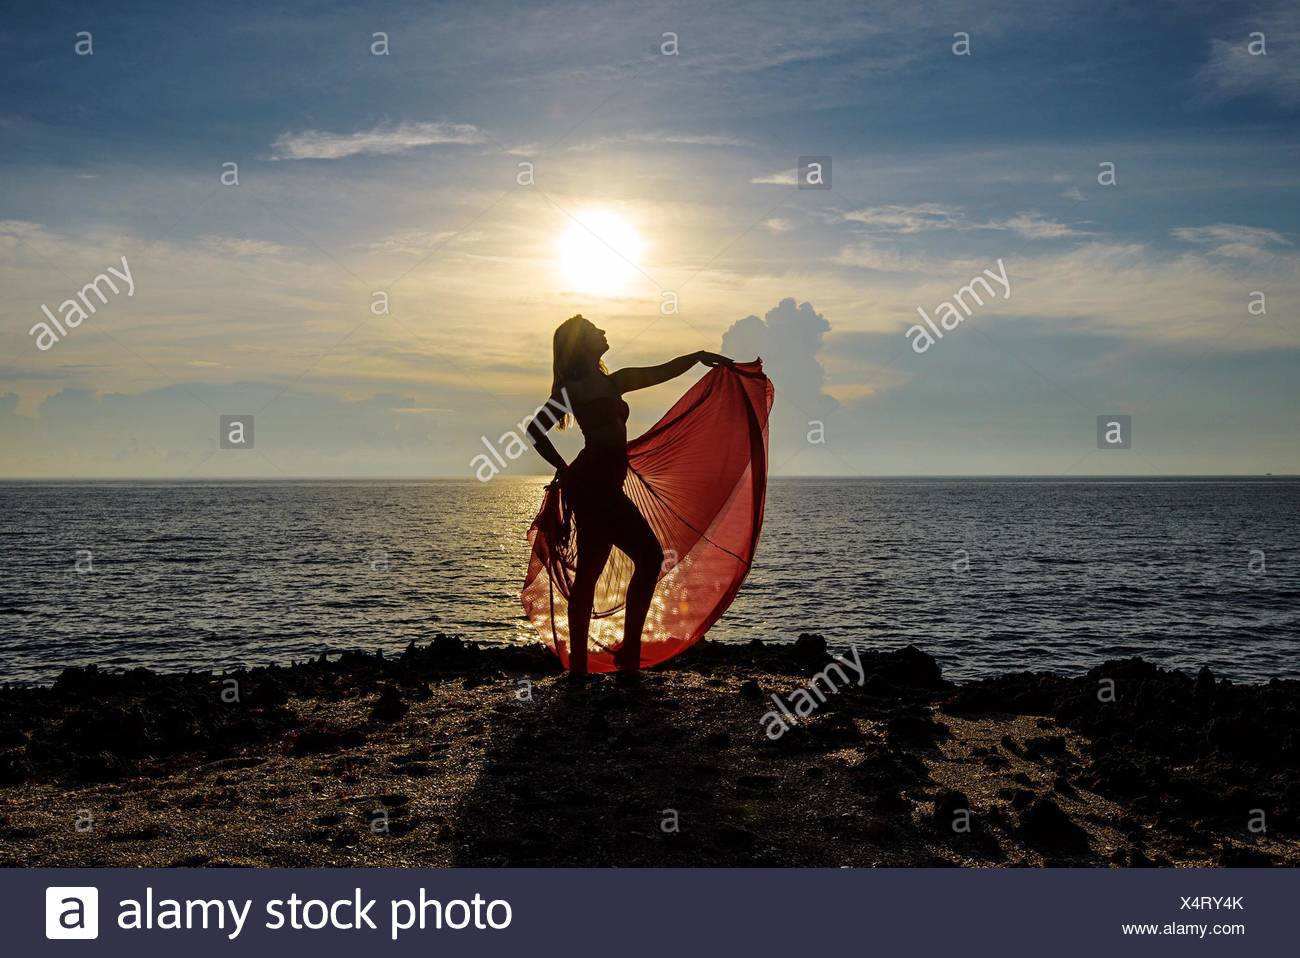 Woman Standing On Cliff By Sea Against Sky During Sunset - Stock Image